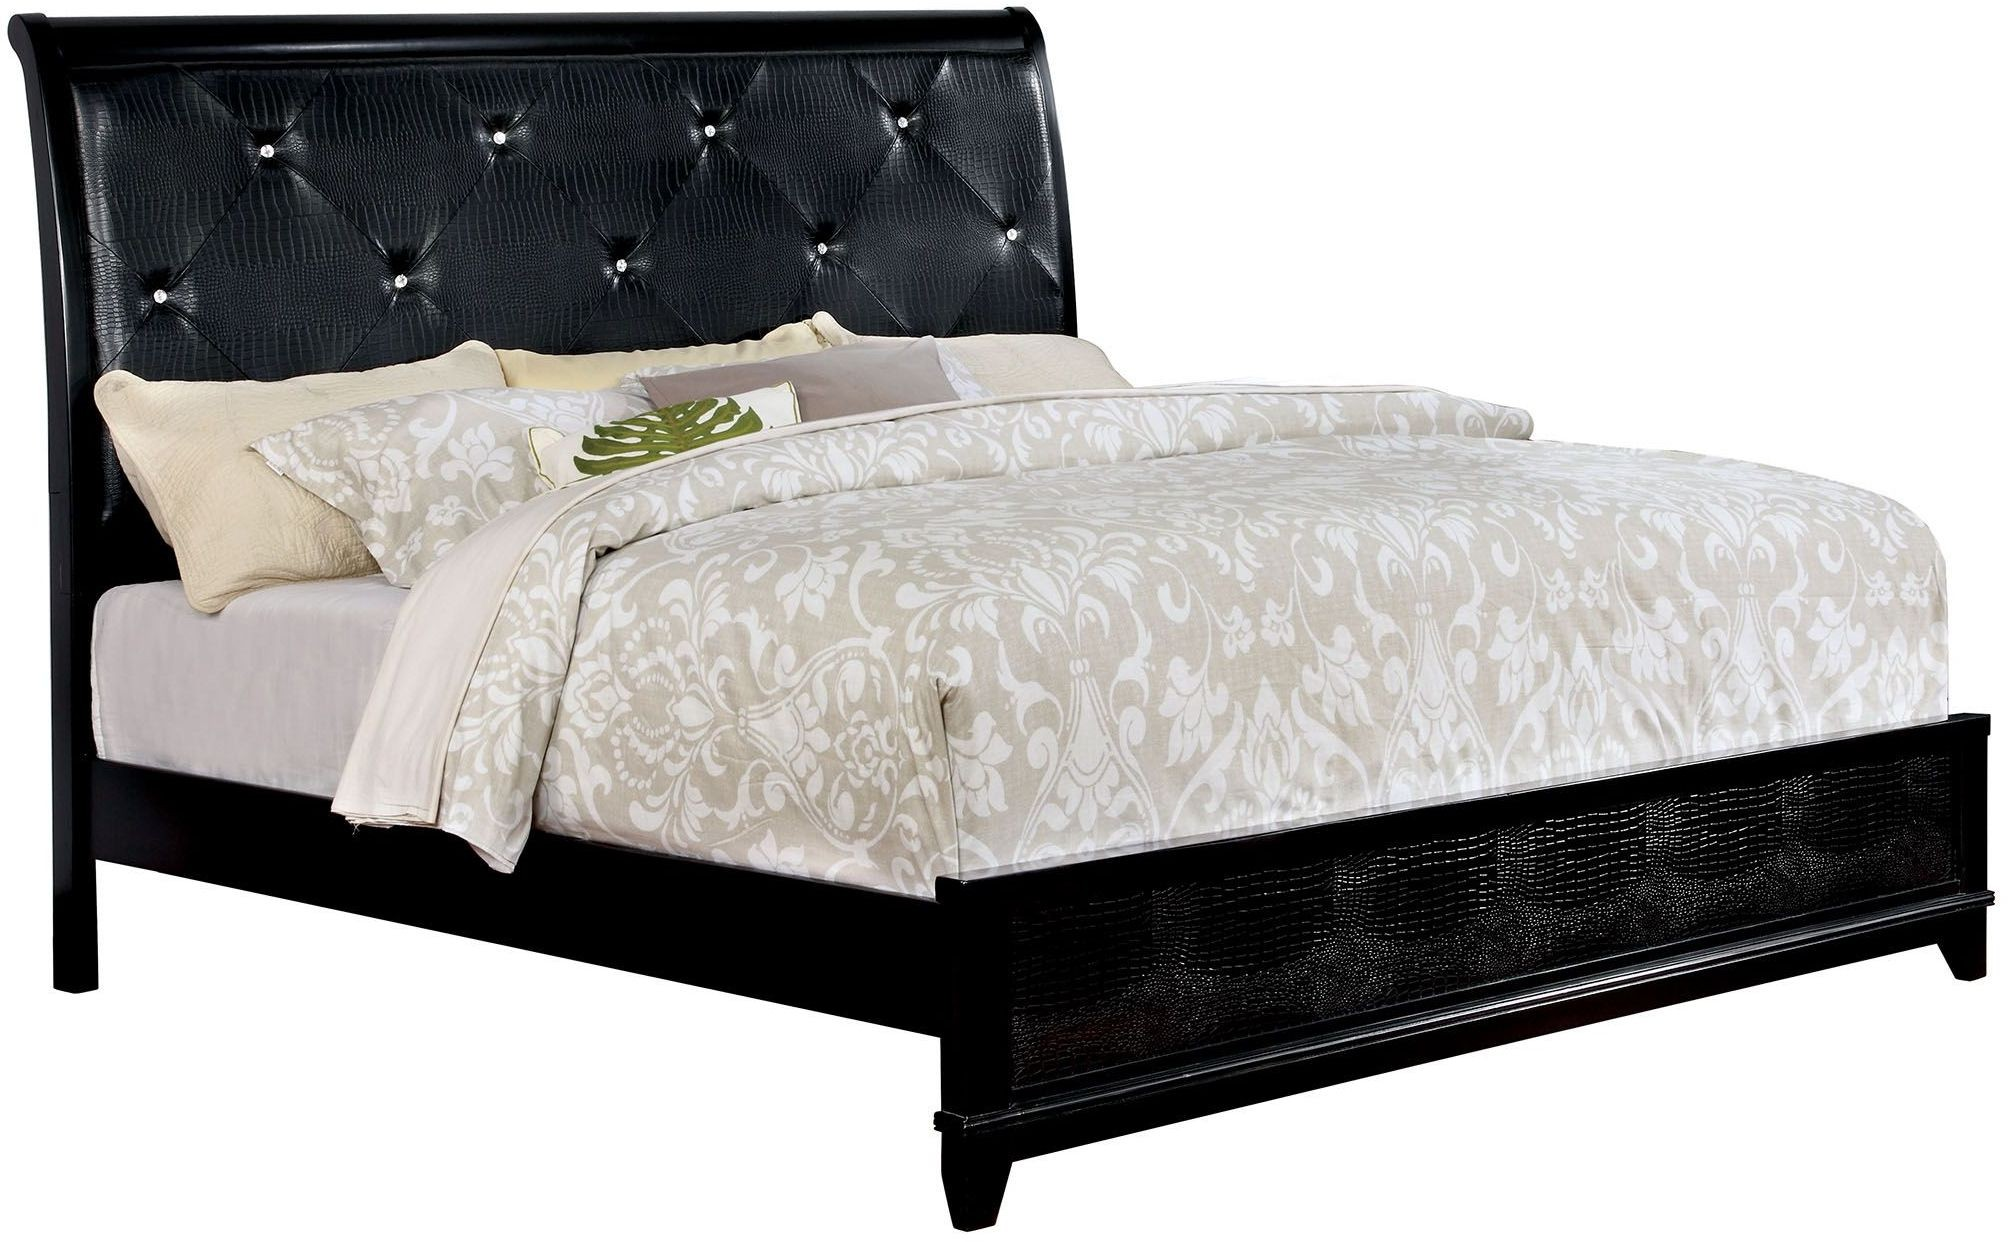 Bryant Ii Black Cal King Upholstered Platform Bed From